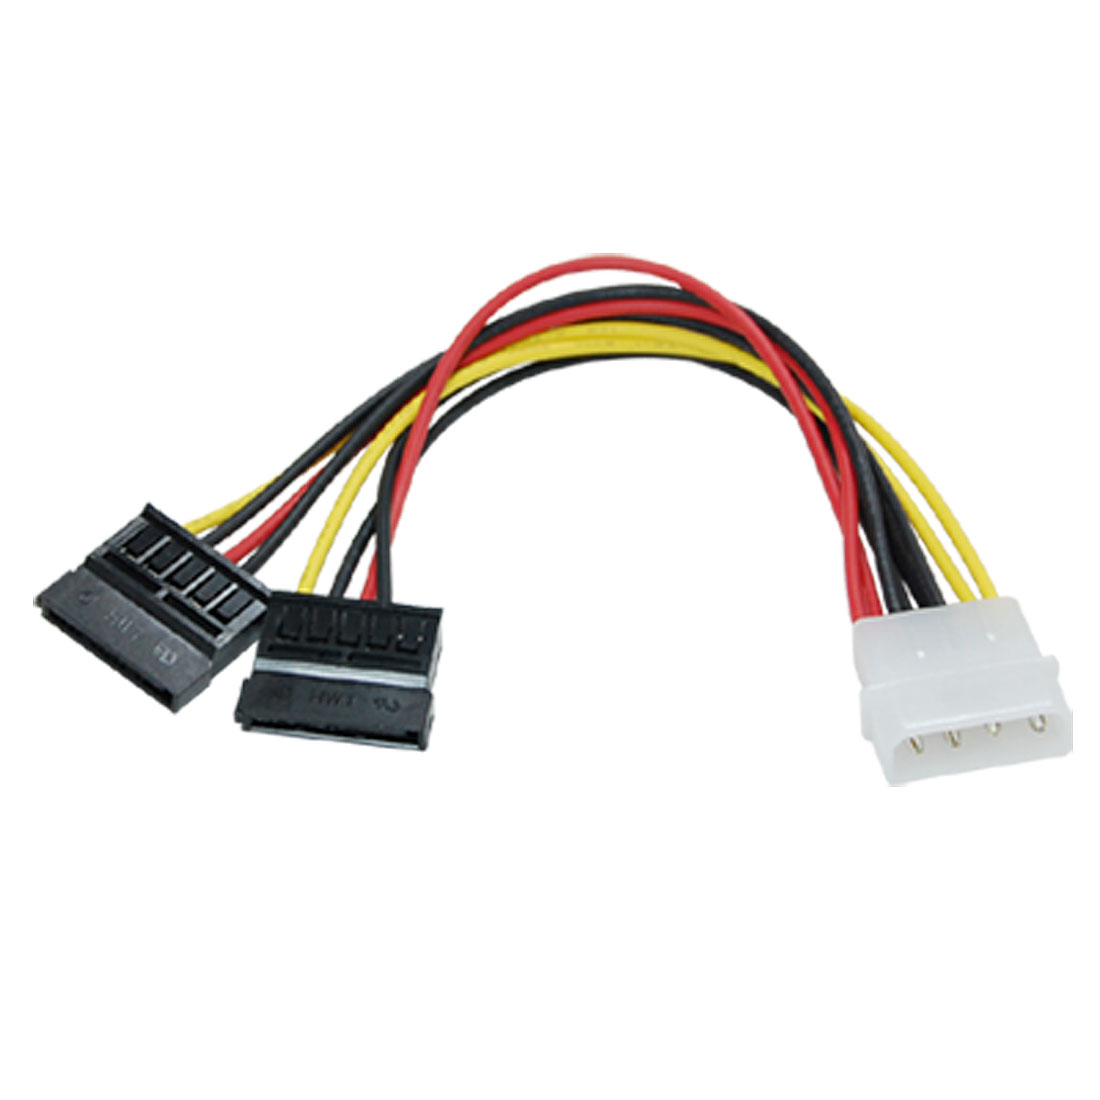 4P IDE to 2 SATA Serial ATA Splitter Power Cable